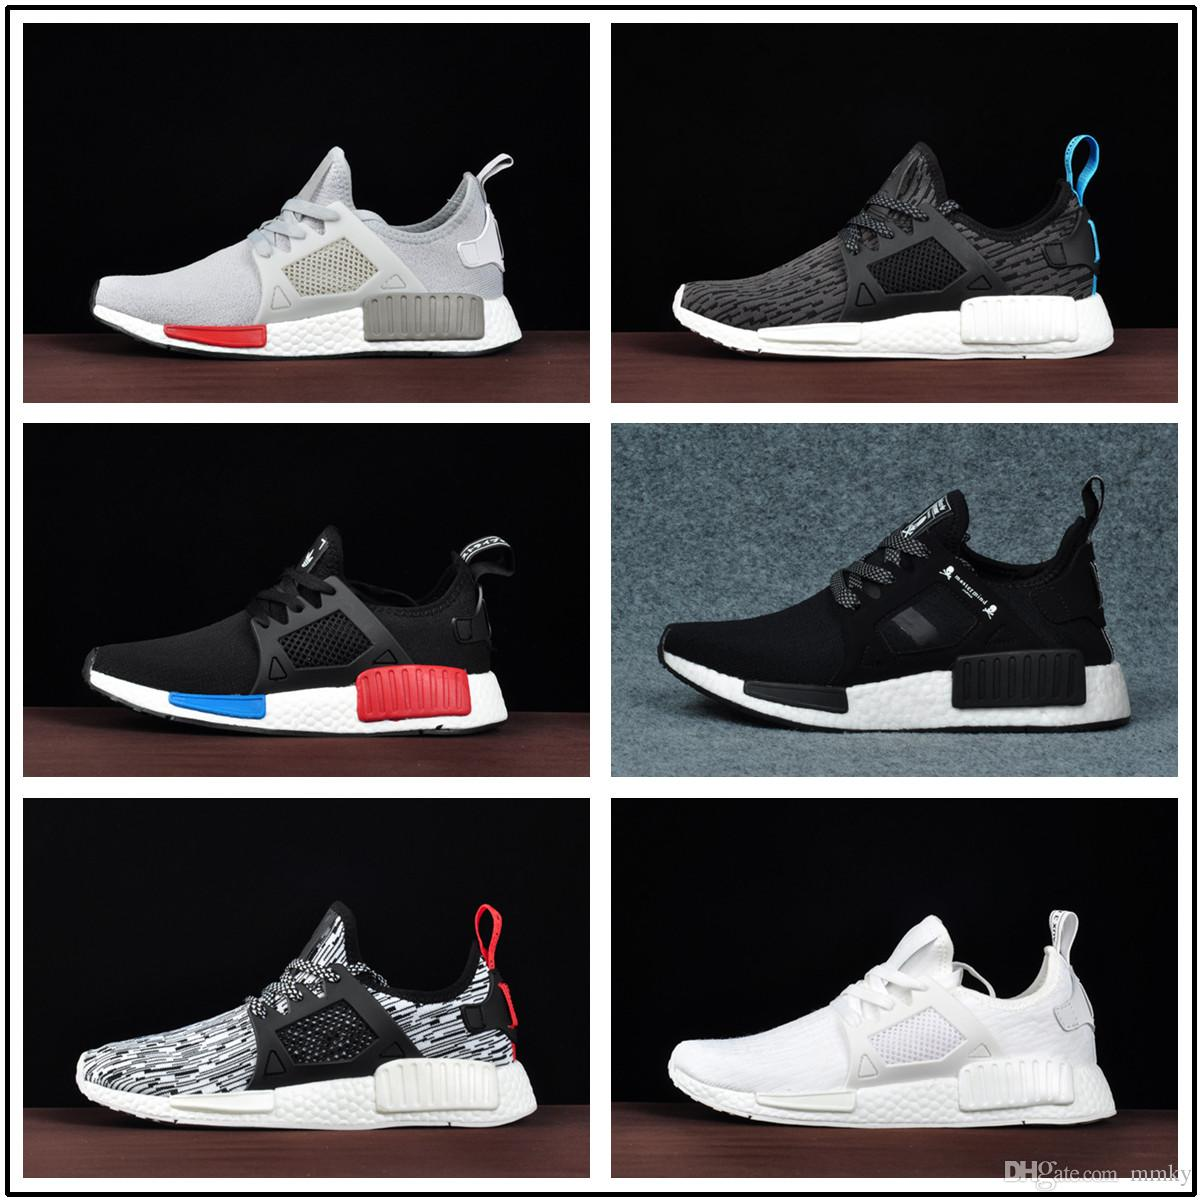 a492cc7e6 2018 Wholesale Discount Cheap Pink Red Gray NMD Runner R1 Primeknit PK Low  Men S   Women S Shoes Classic Fashion Sport Shoes Womens Shoes Cheap Shoes  From ...